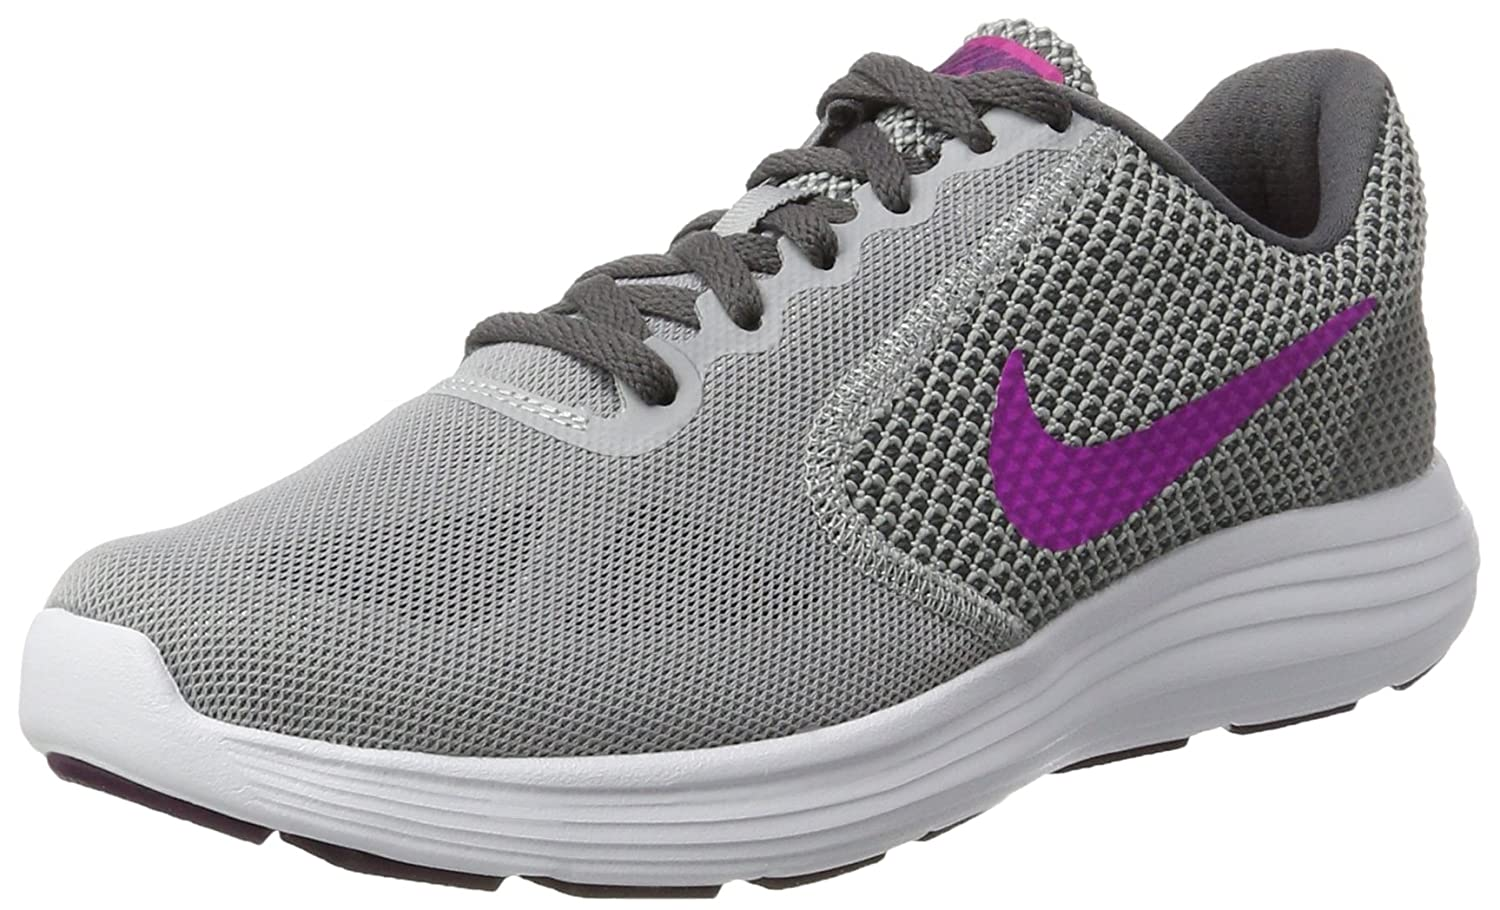 NIKE Women's Revolution 3 Running Shoe B0028NI73E 6.5 B(M) US|Wolf Grey/Fire Pink/Dark Grey